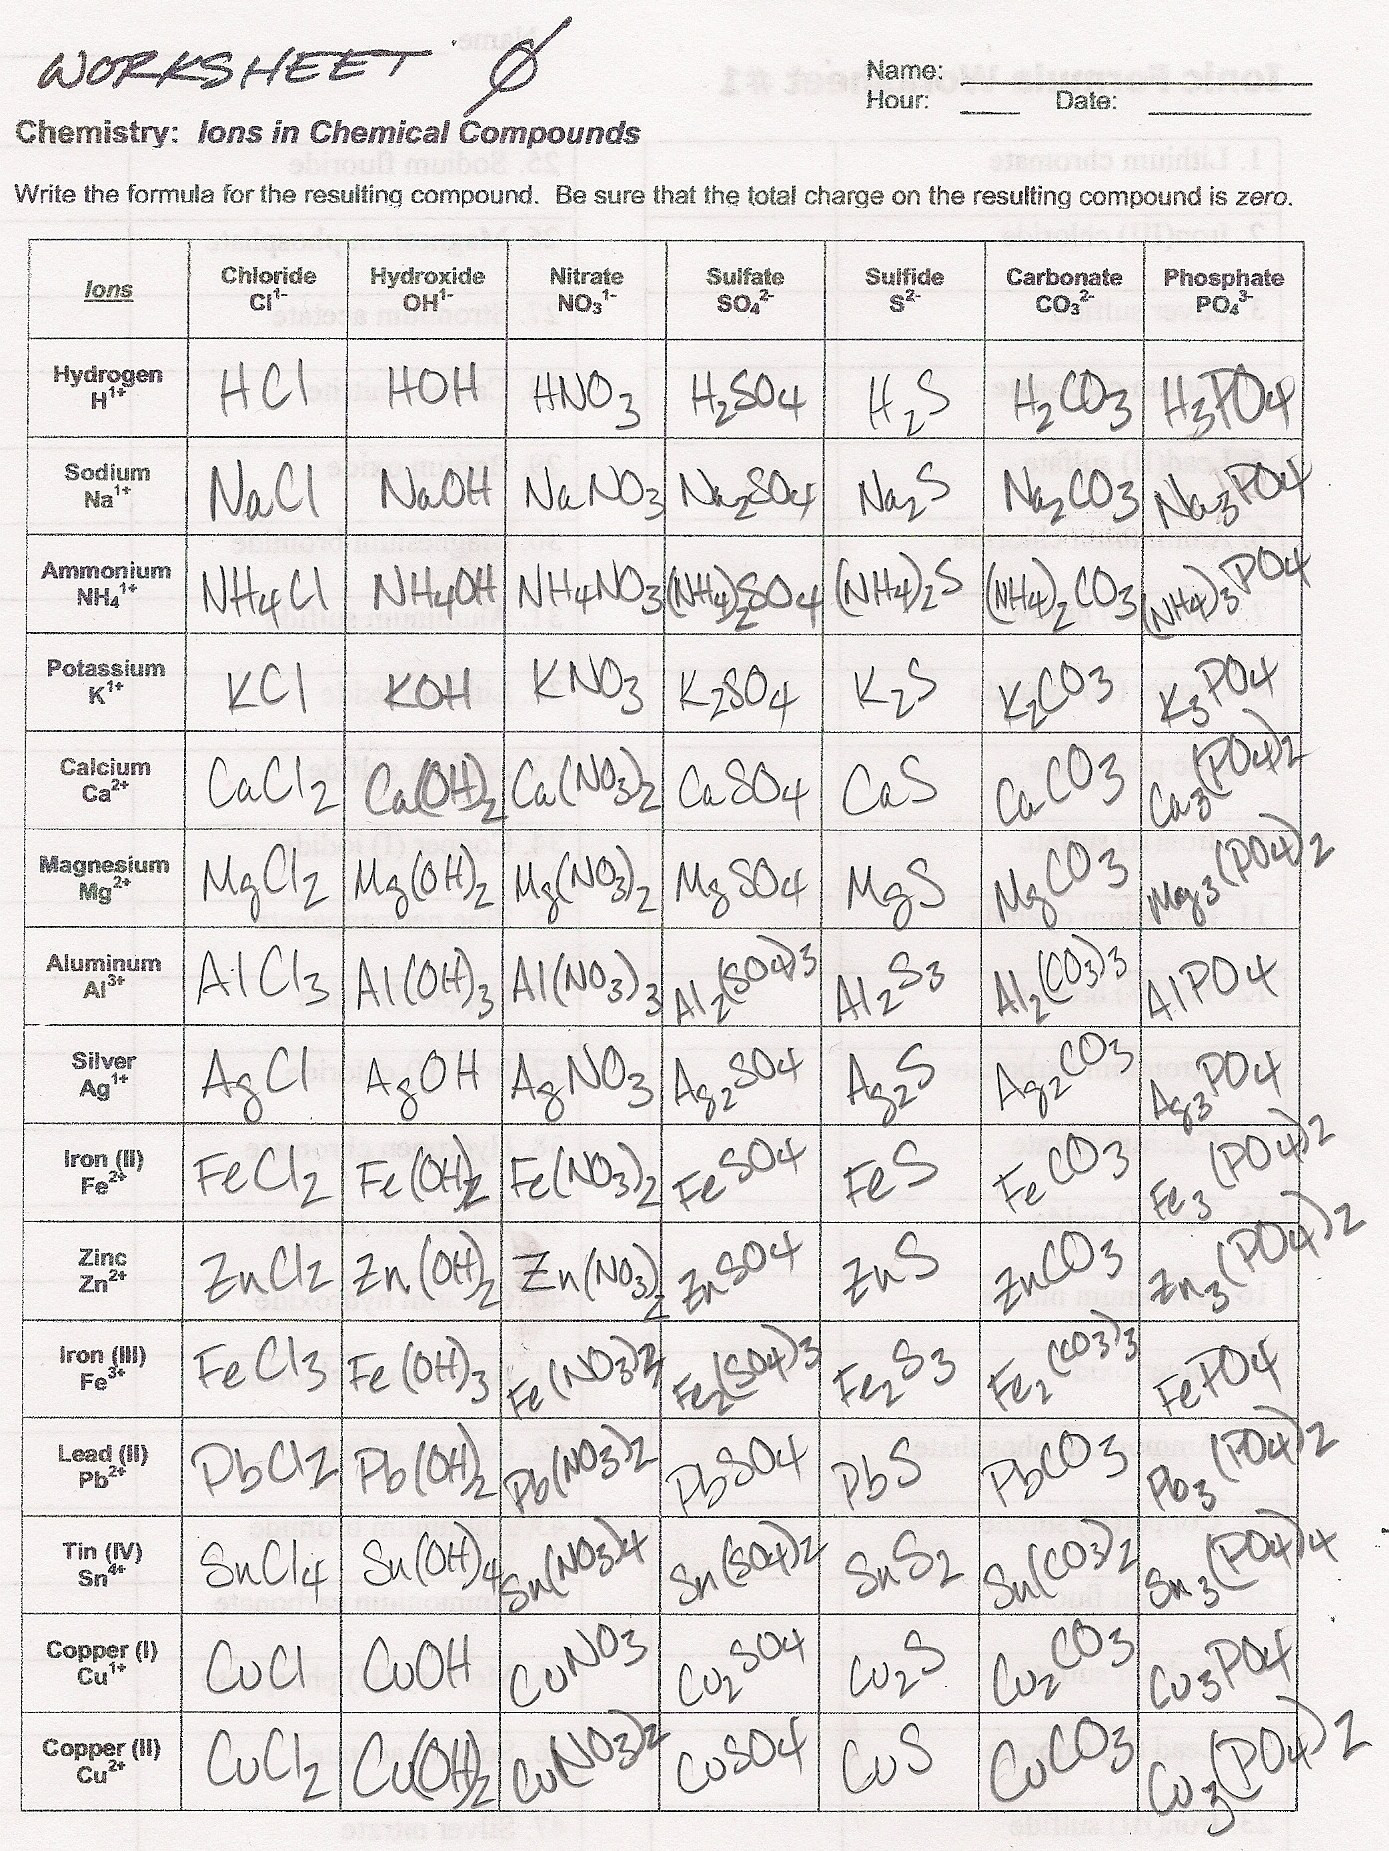 Atoms and Ions Worksheet Answers Traditional Chemistry Ionic formulas Worksheet Answers